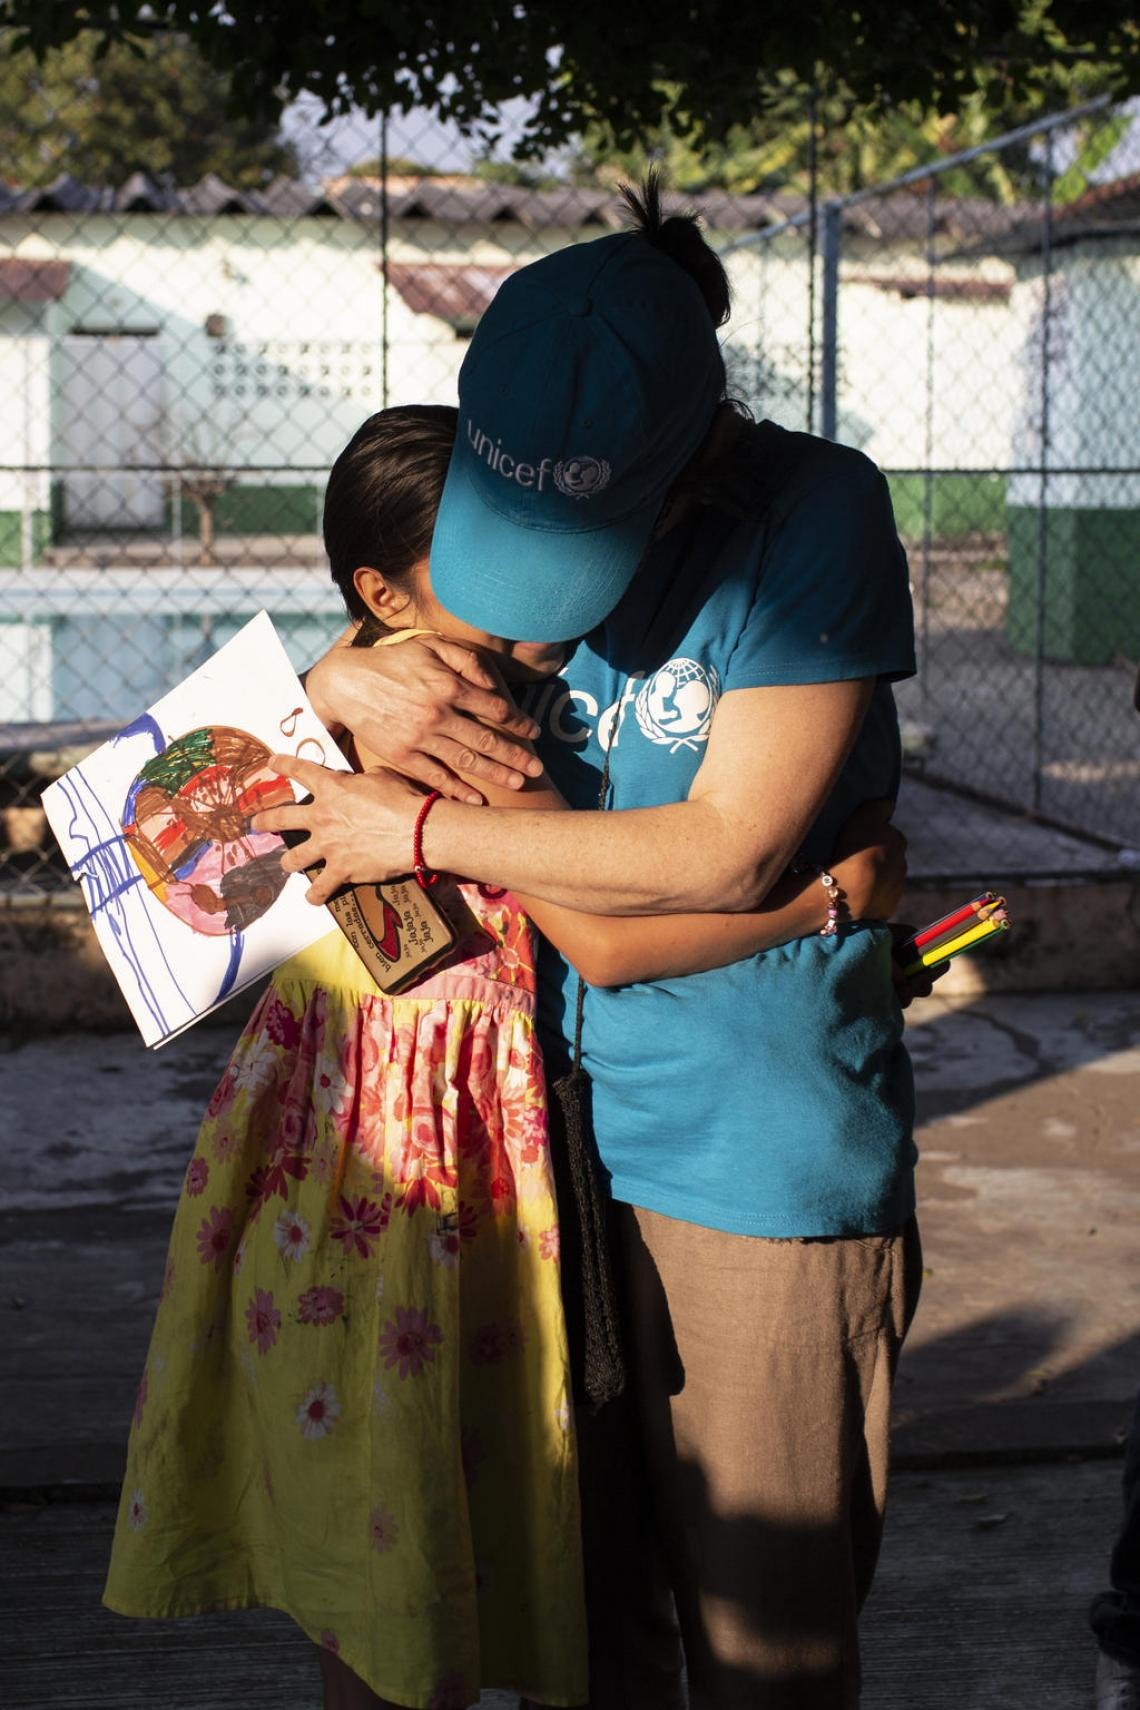 Jennifer's mother was killed by a gang two years ago. A NGO volunteer at the UNICEF-supported St. Augustine hotel for refugees hugs her now after she has travelled with three siblings from San Pedro Sula, Honduras to Tapachula, Mexico. UNICEF advocates with government partners to build on the country's programmes for children on the move, which keep families like Jennifer's together. She has been drawing pictures of her journey.